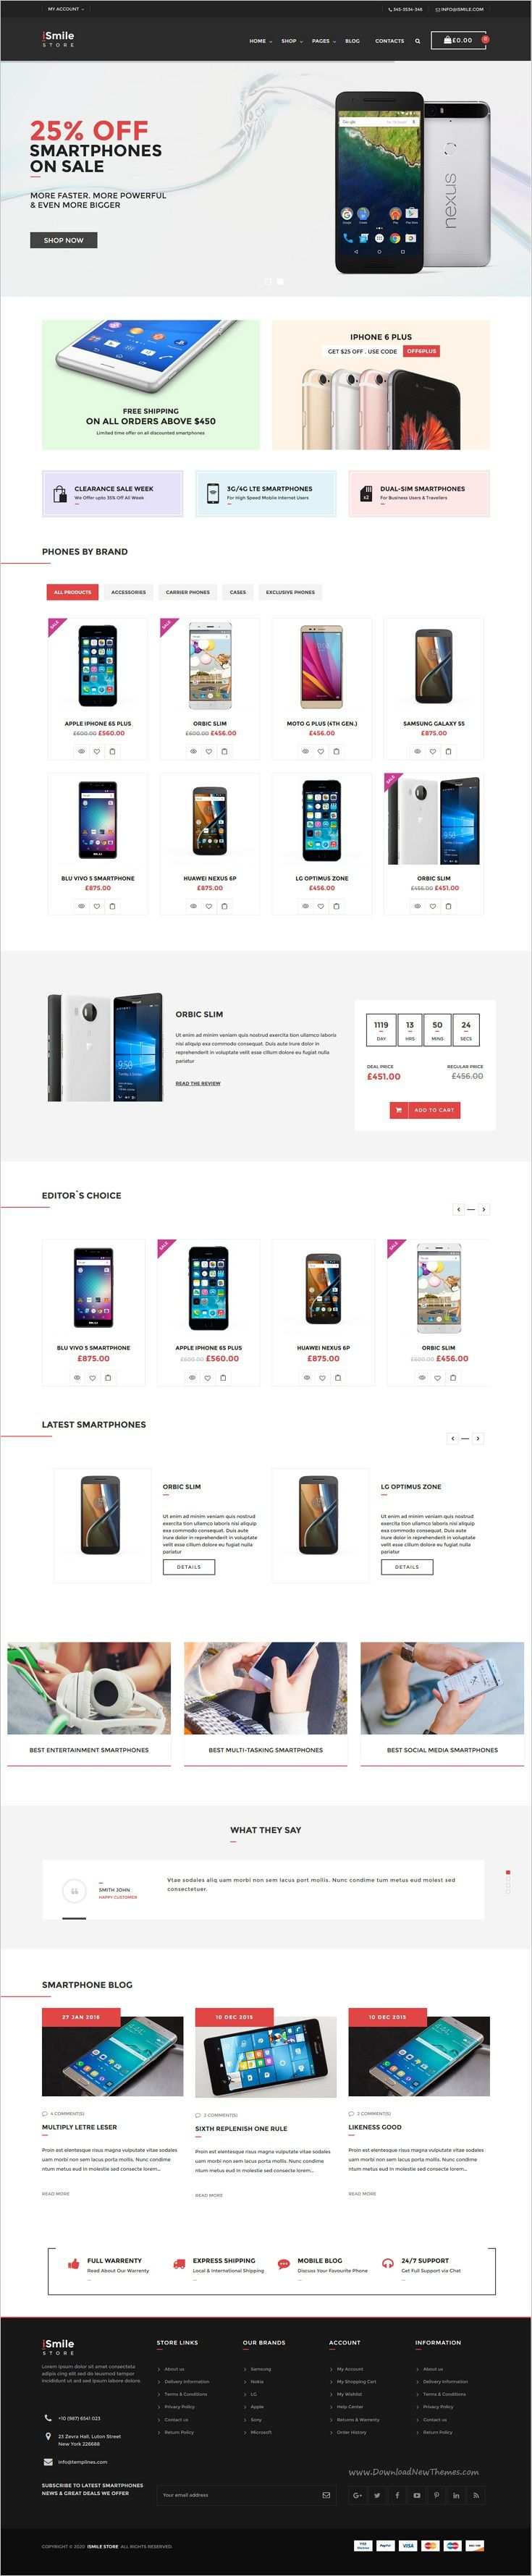 iSmiler Store is a responsive 3in1 #WooCommerce #WordPress Theme for multiconcept #eCommerce website with clean and modern design download now➩ https://themeforest.net/item/ismile-phones-market-wordpress-theme/17959917?ref=Datasata